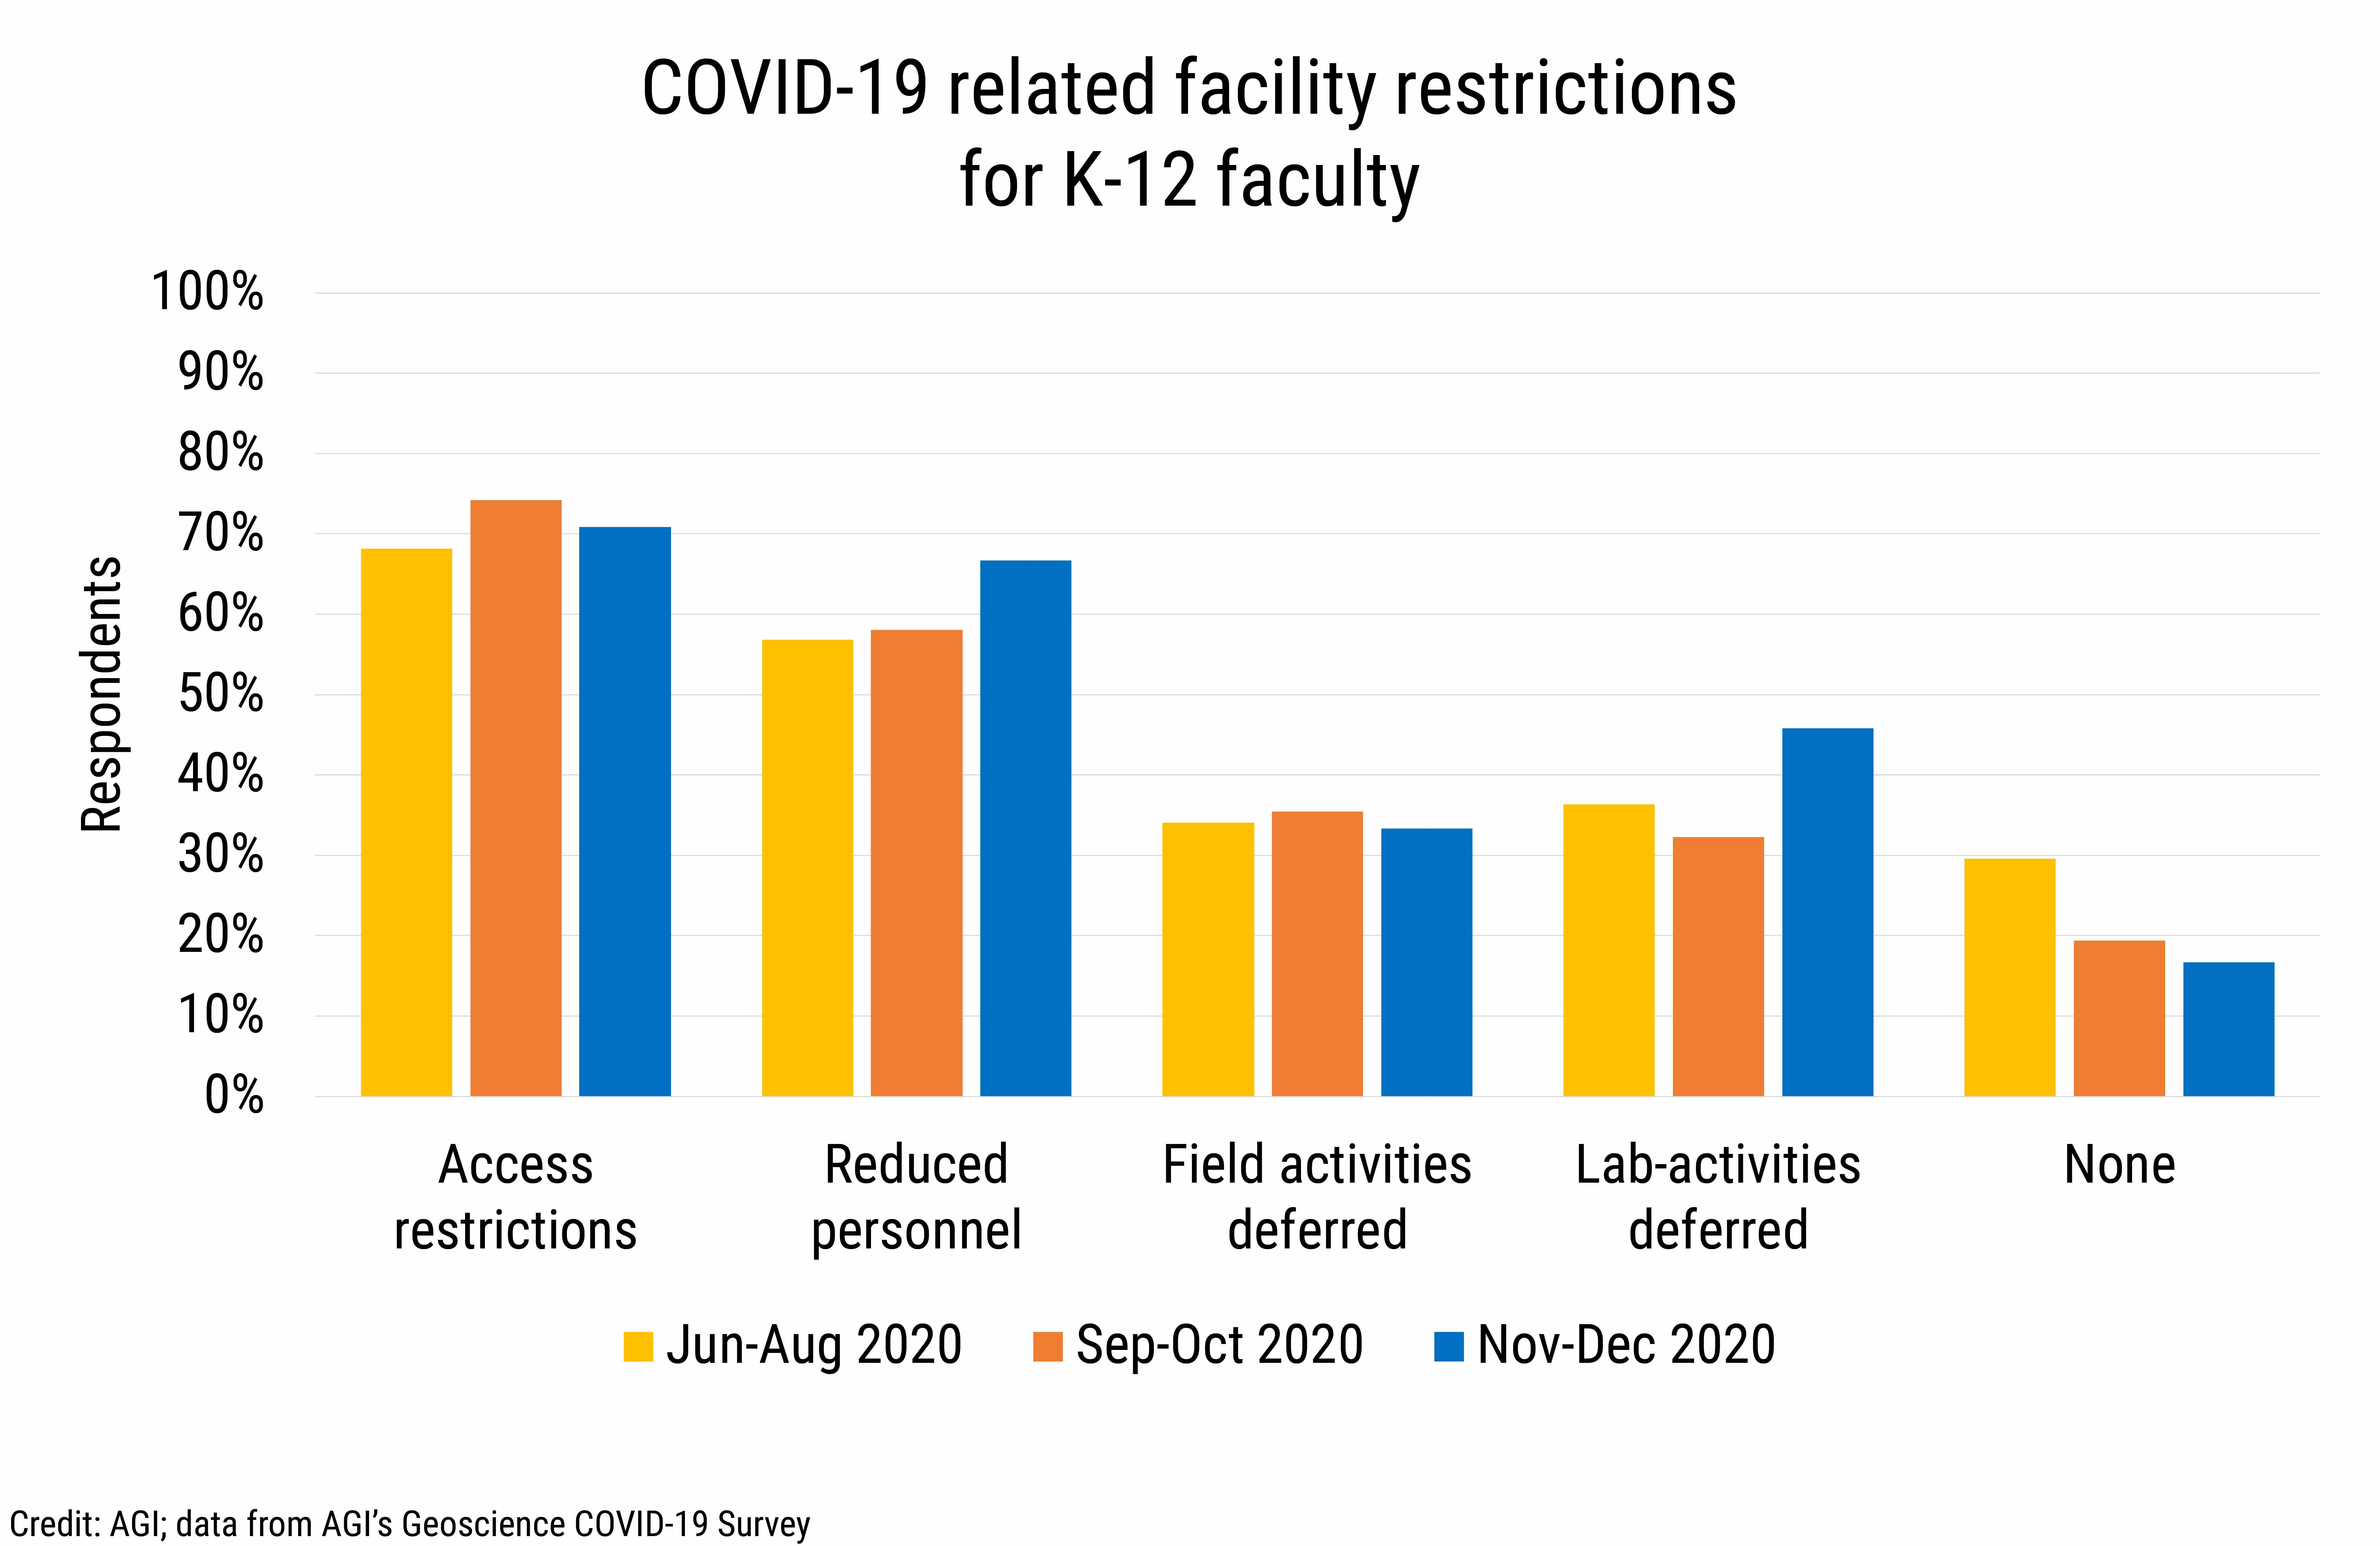 DB_2021-002 chart 11: COVID-19 related facility restrictions for K-12 faculty (Credit: AGI; data from AGI's Geoscience COVID-19 Survey)